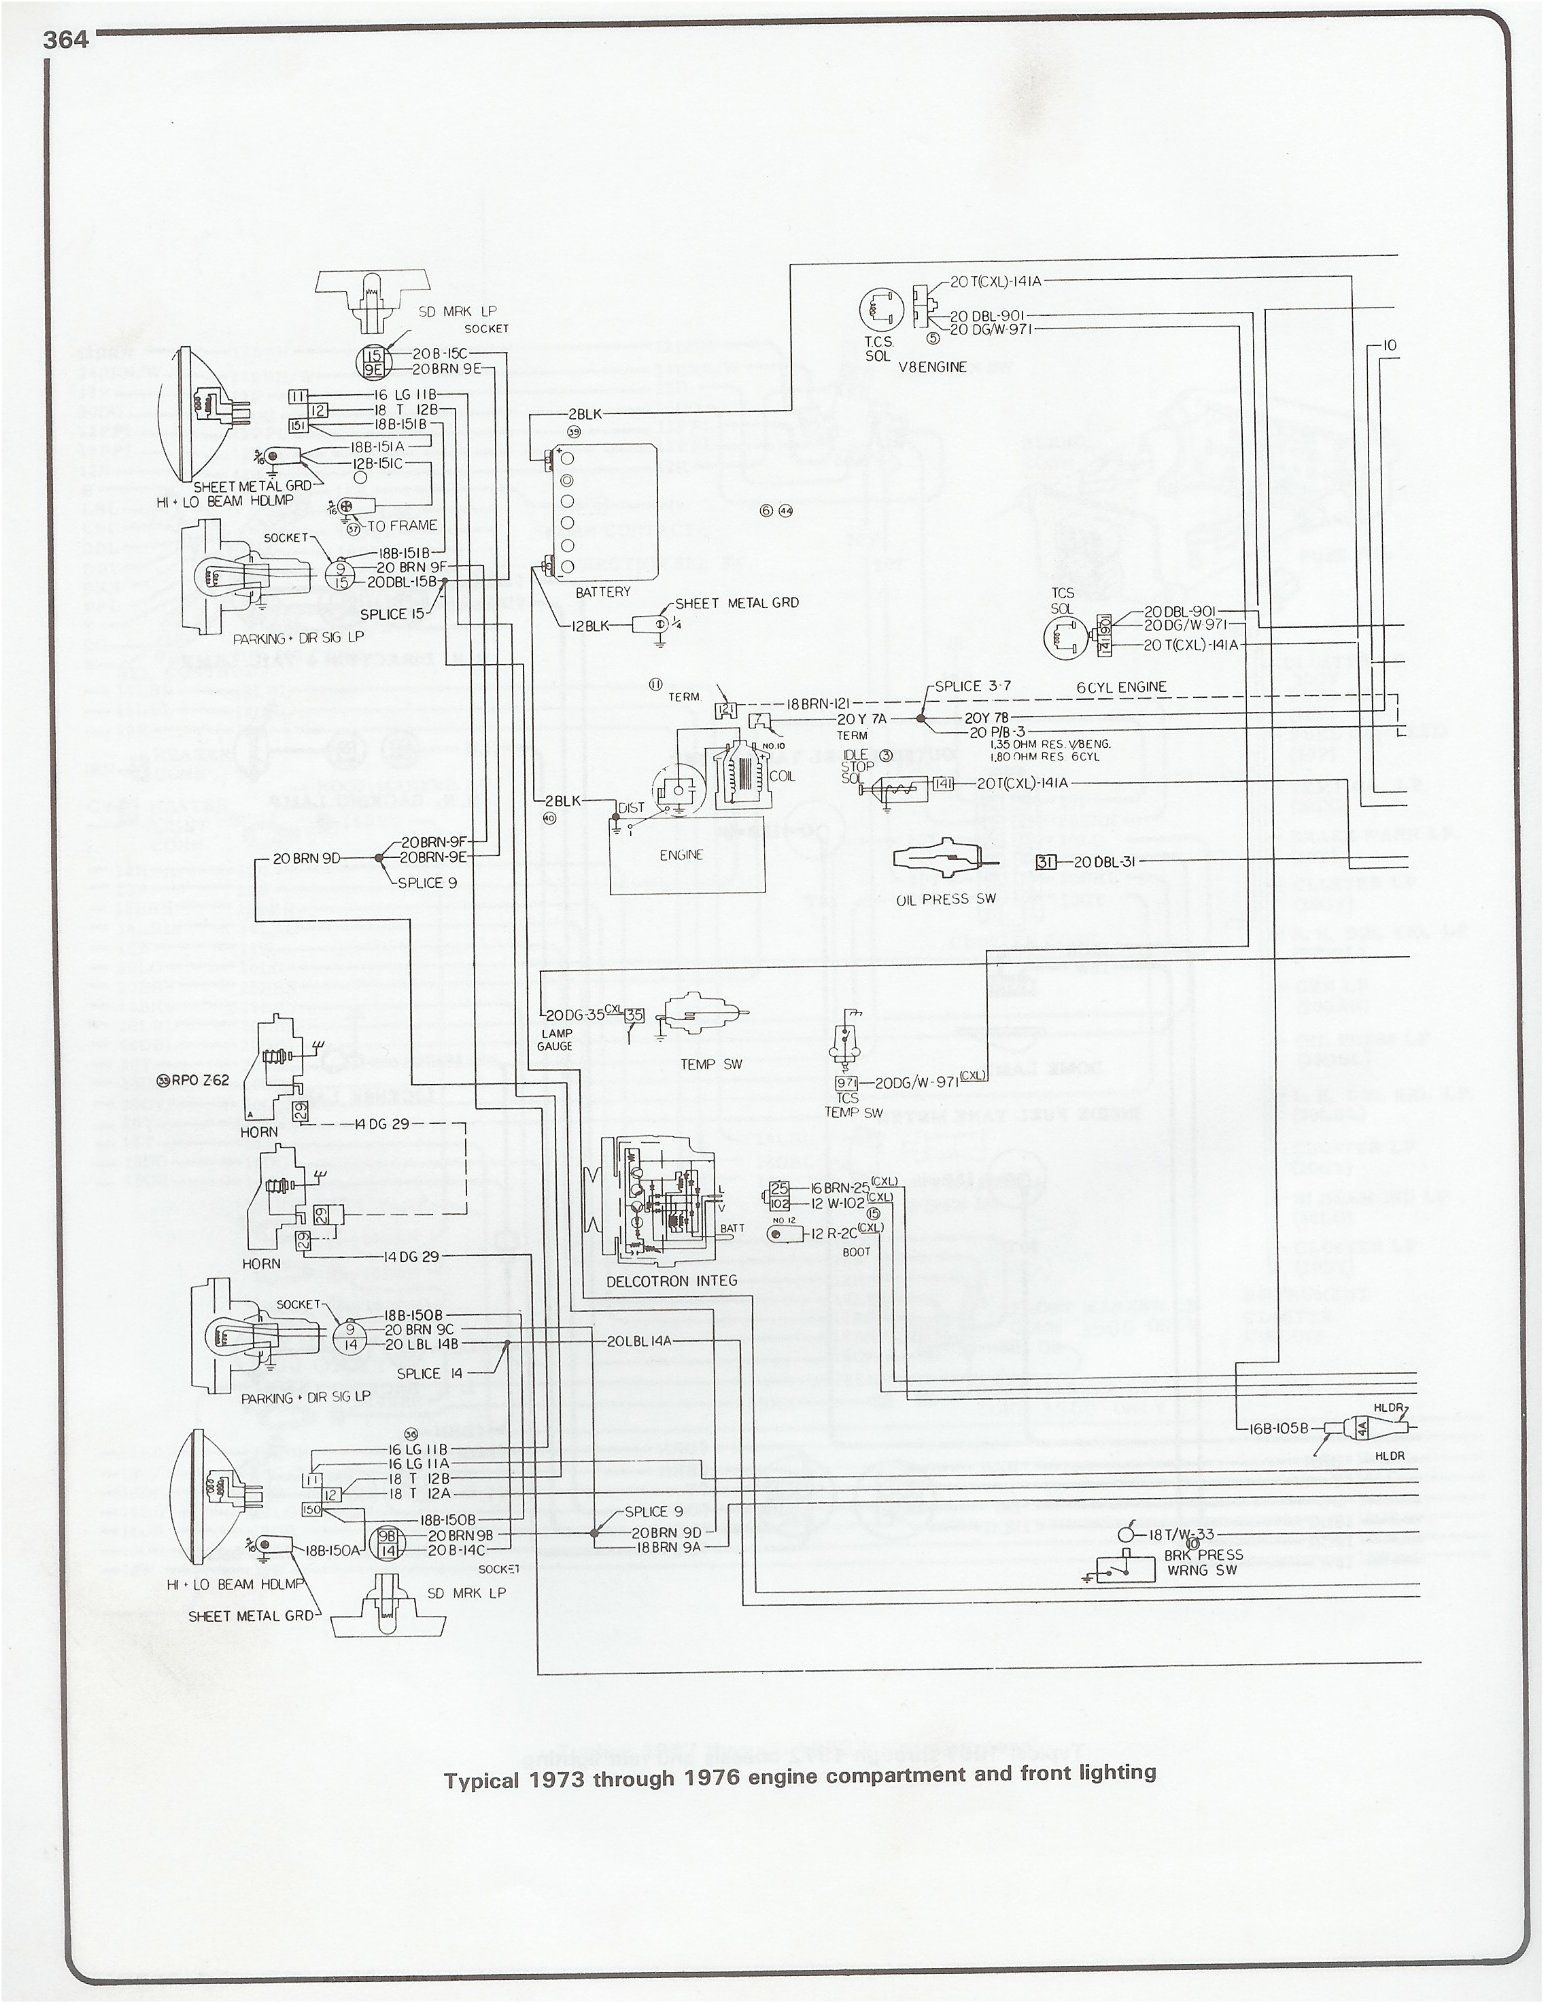 Wiring Diagram 1973  1976 Chevy Pickup #Chevy #Wiring #